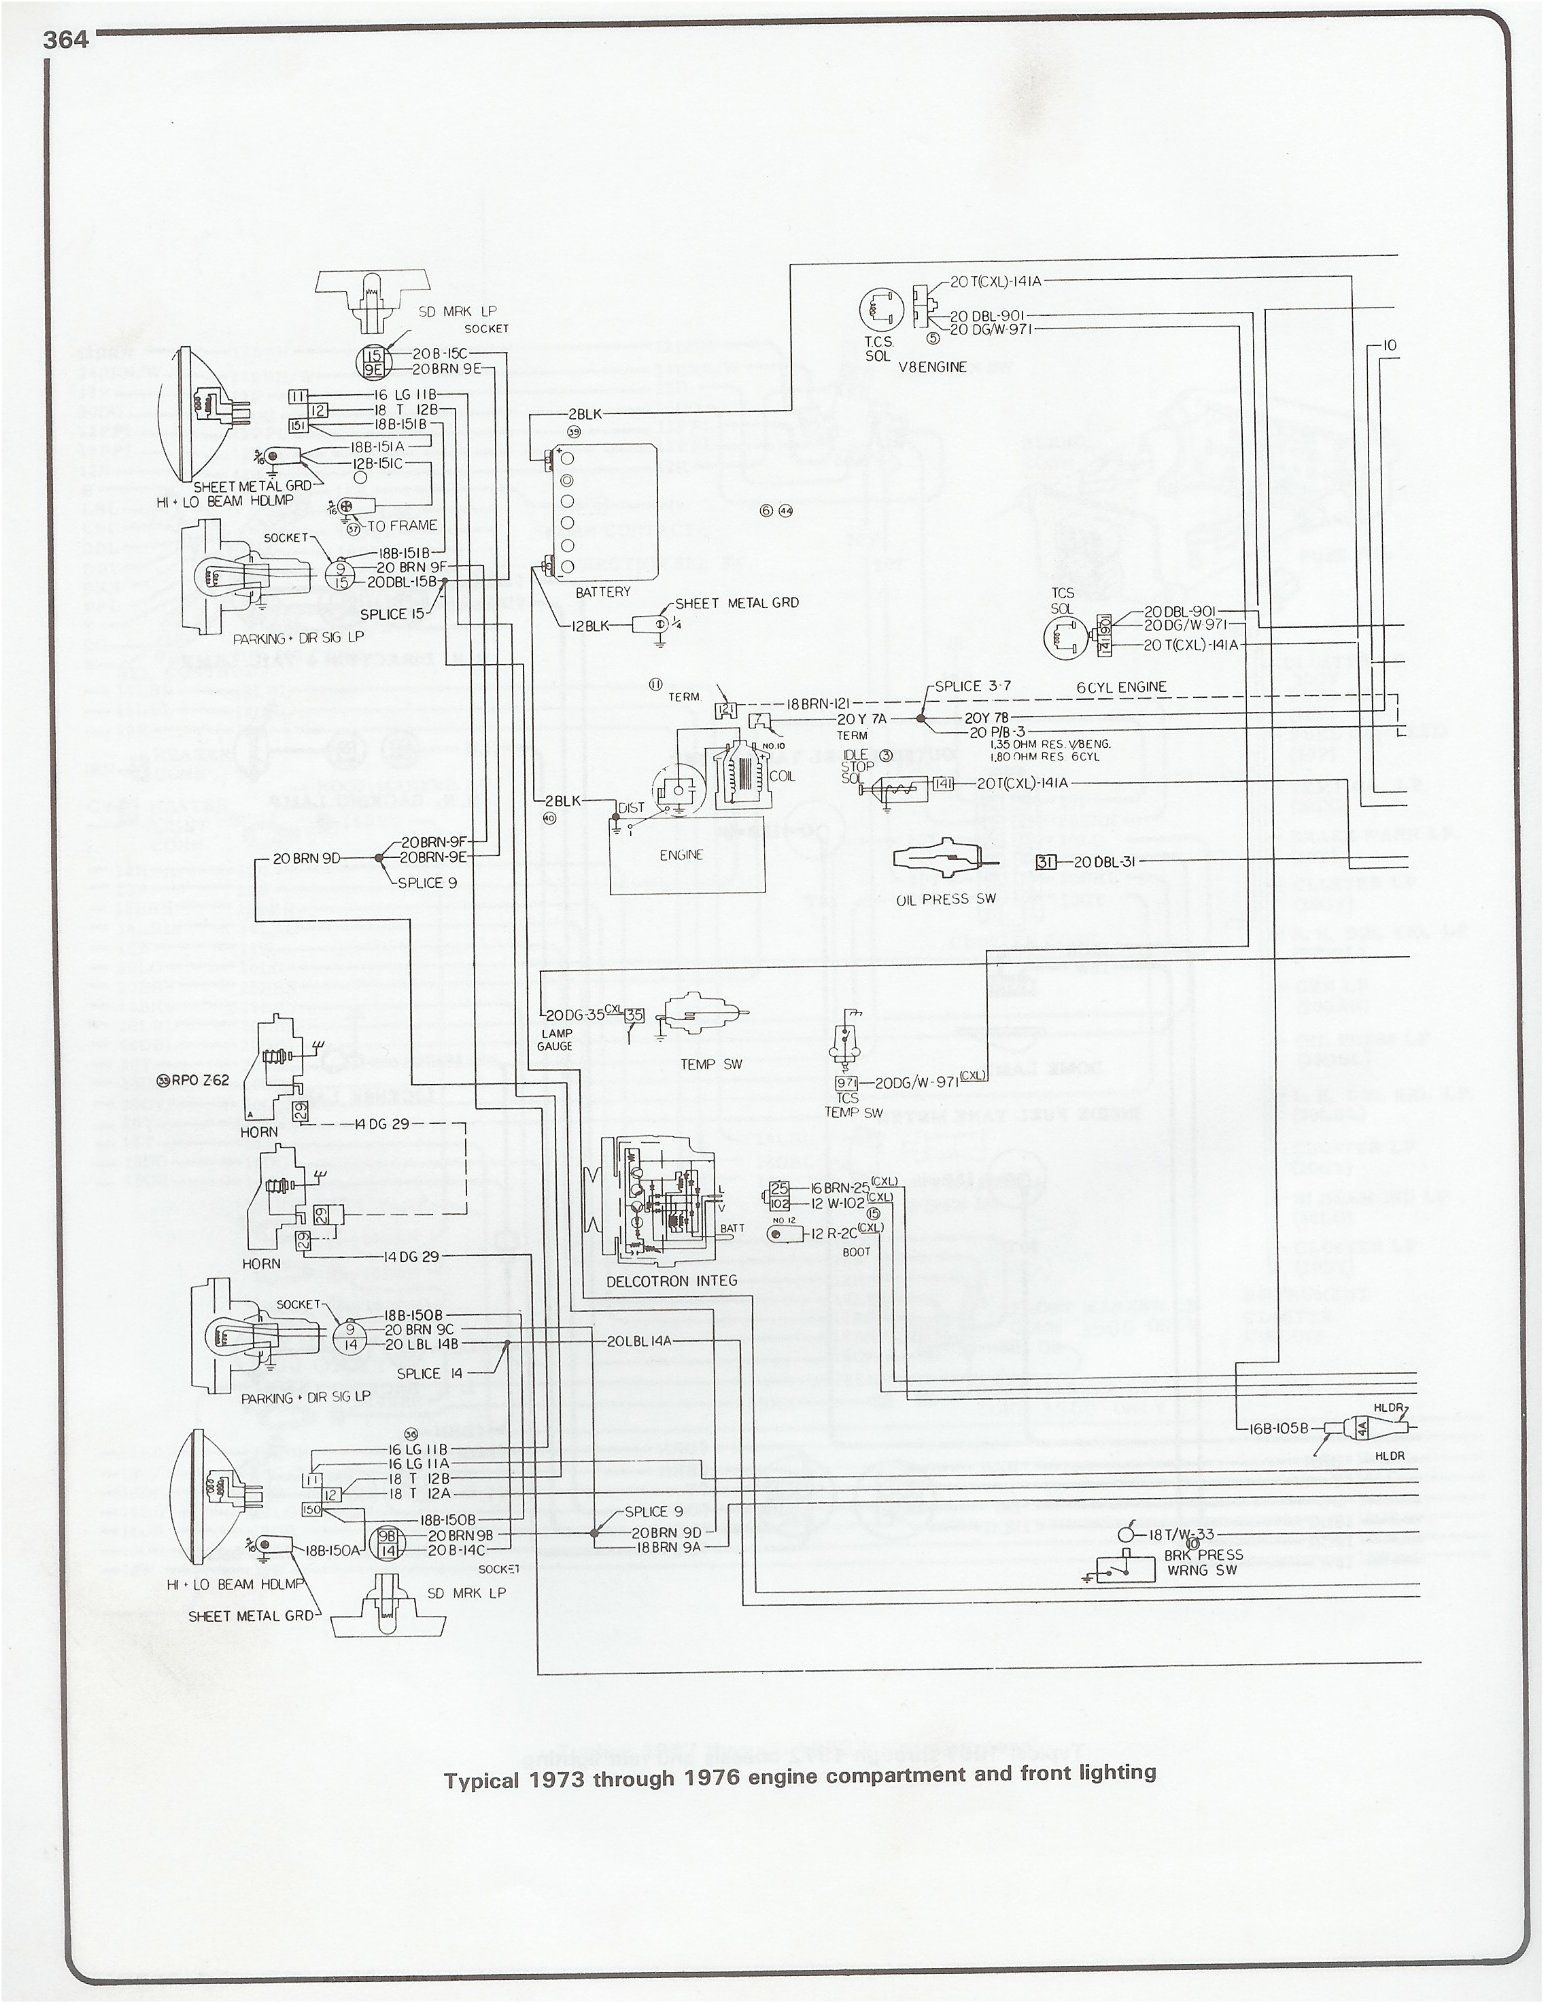 Wiring Diagram 1973  1976 Chevy Pickup #Chevy #Wiring #